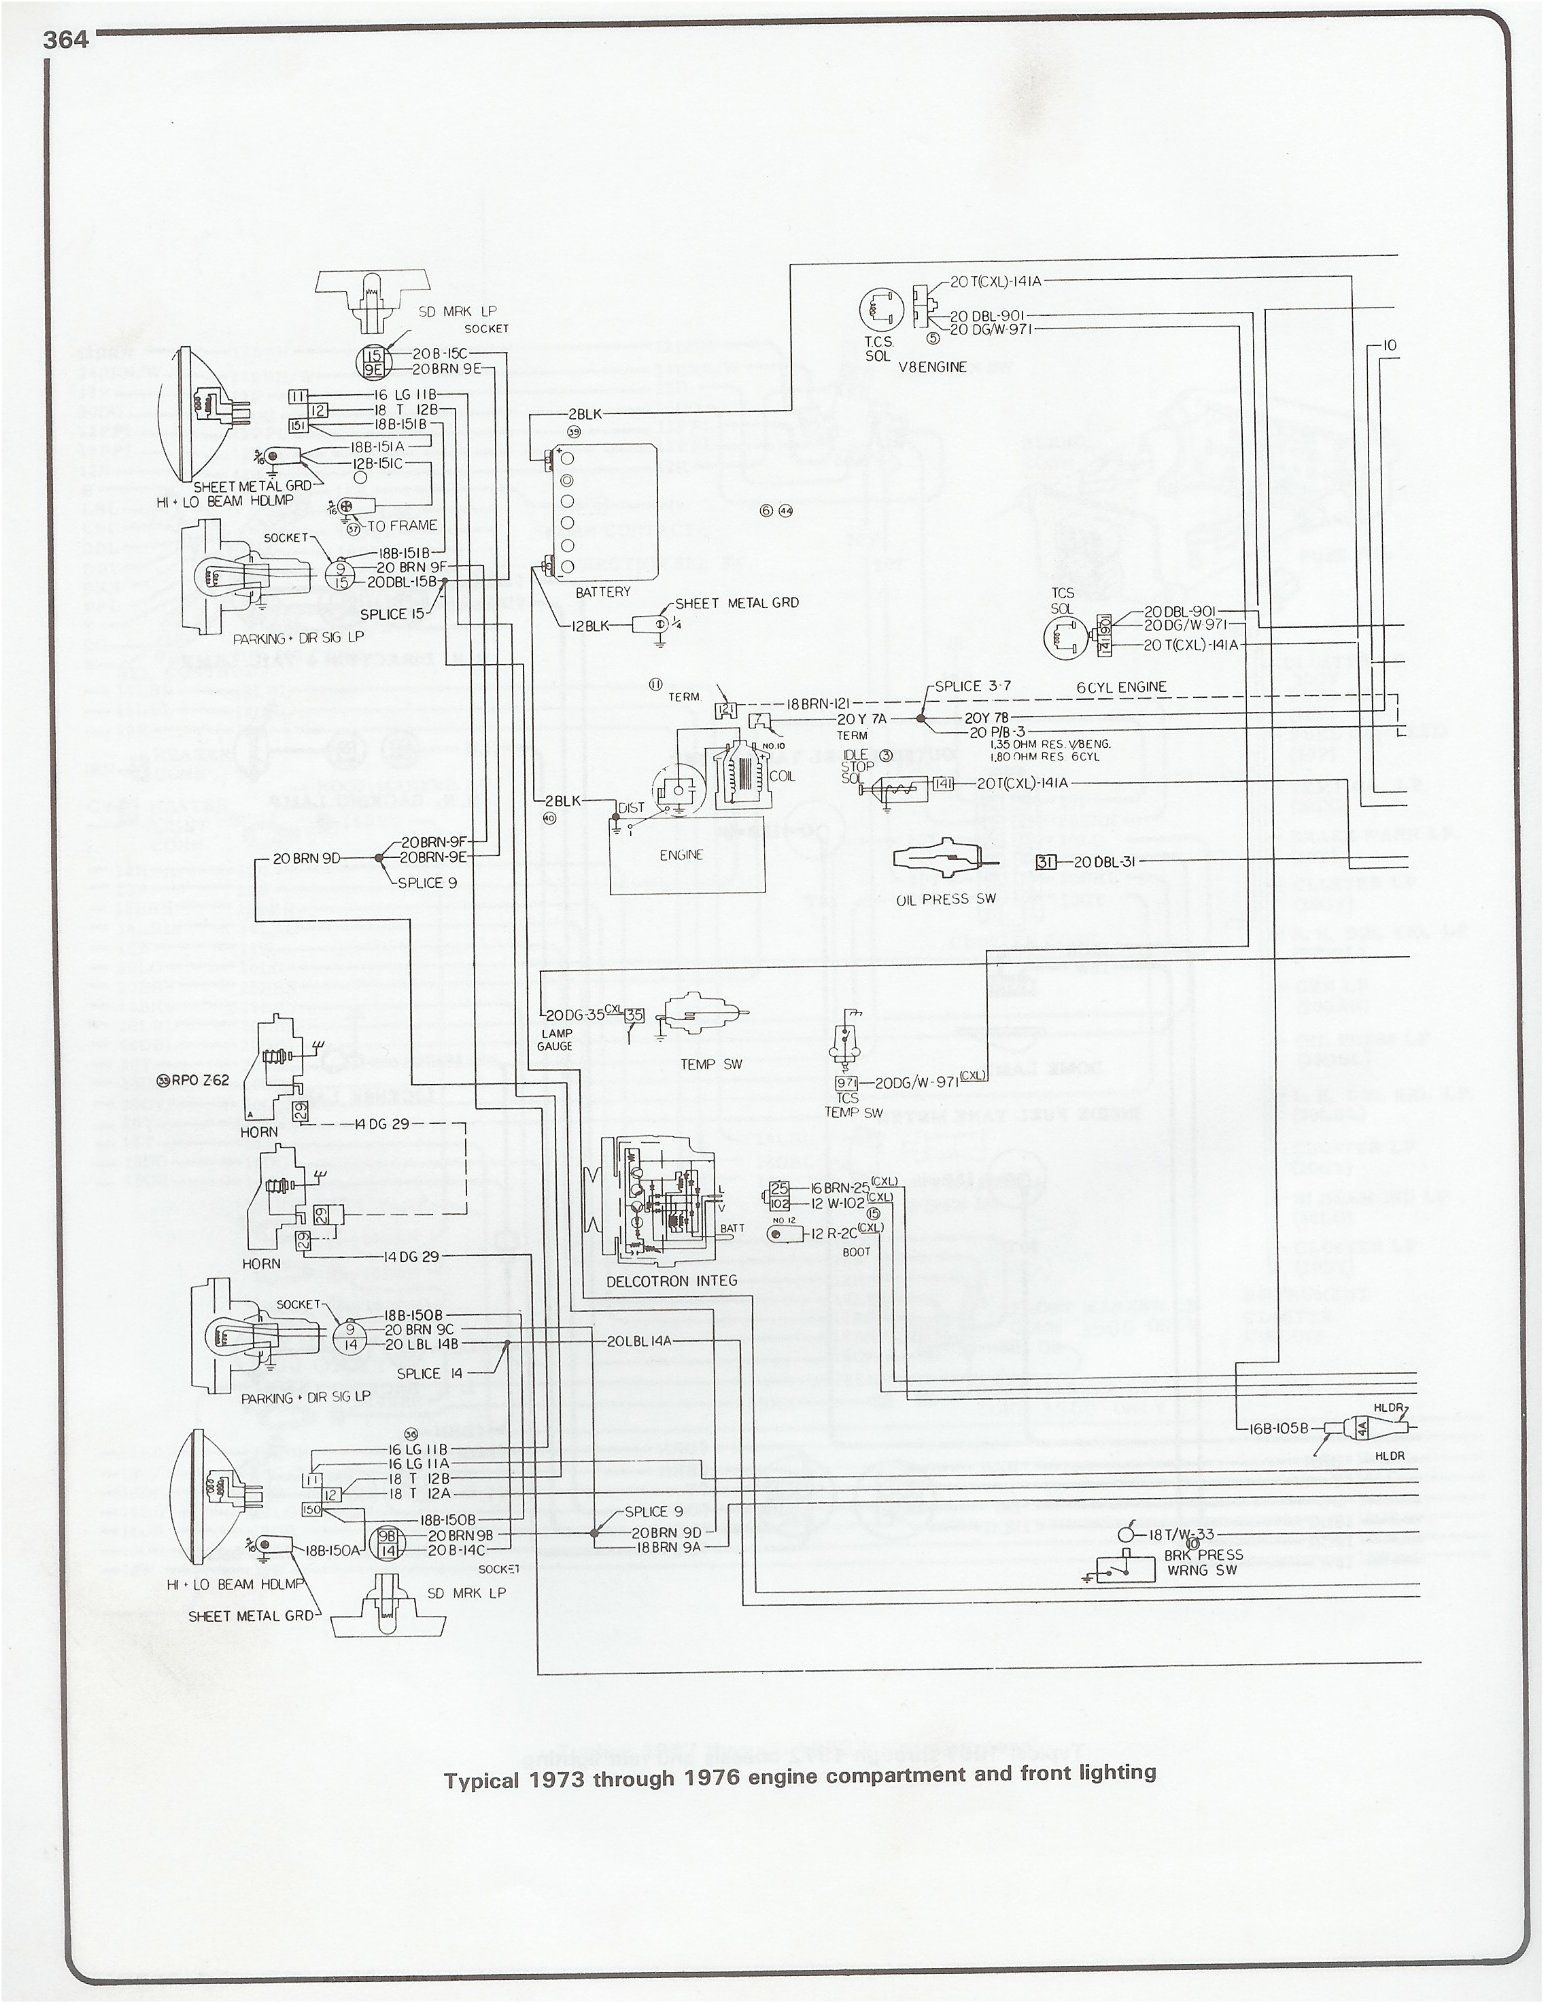 Wiring Diagram 1973  1976 Chevy Pickup #Chevy #Wiring #